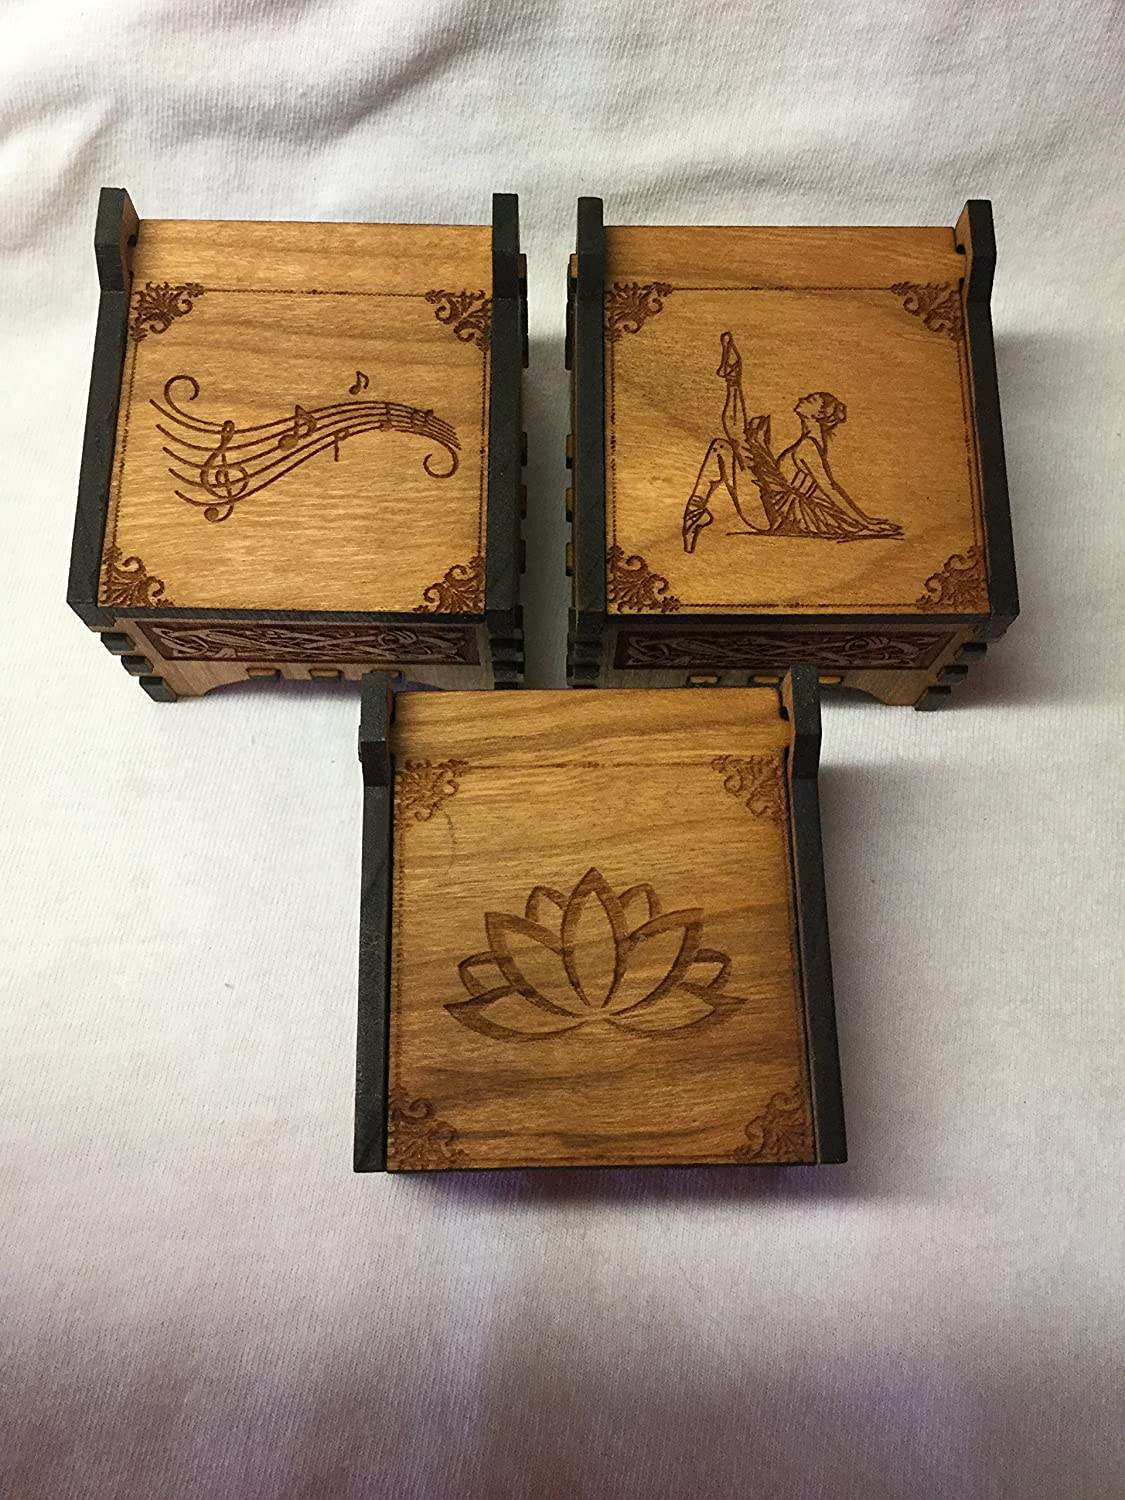 Trinket Boxes: Angels,Footprints,Footprints w/wing,Cross,Music Notes,Dancer,Lotus,Daughter,Paw,Sun,Lady Bug, Owl,Turtle,Dragonfly,Butterfly